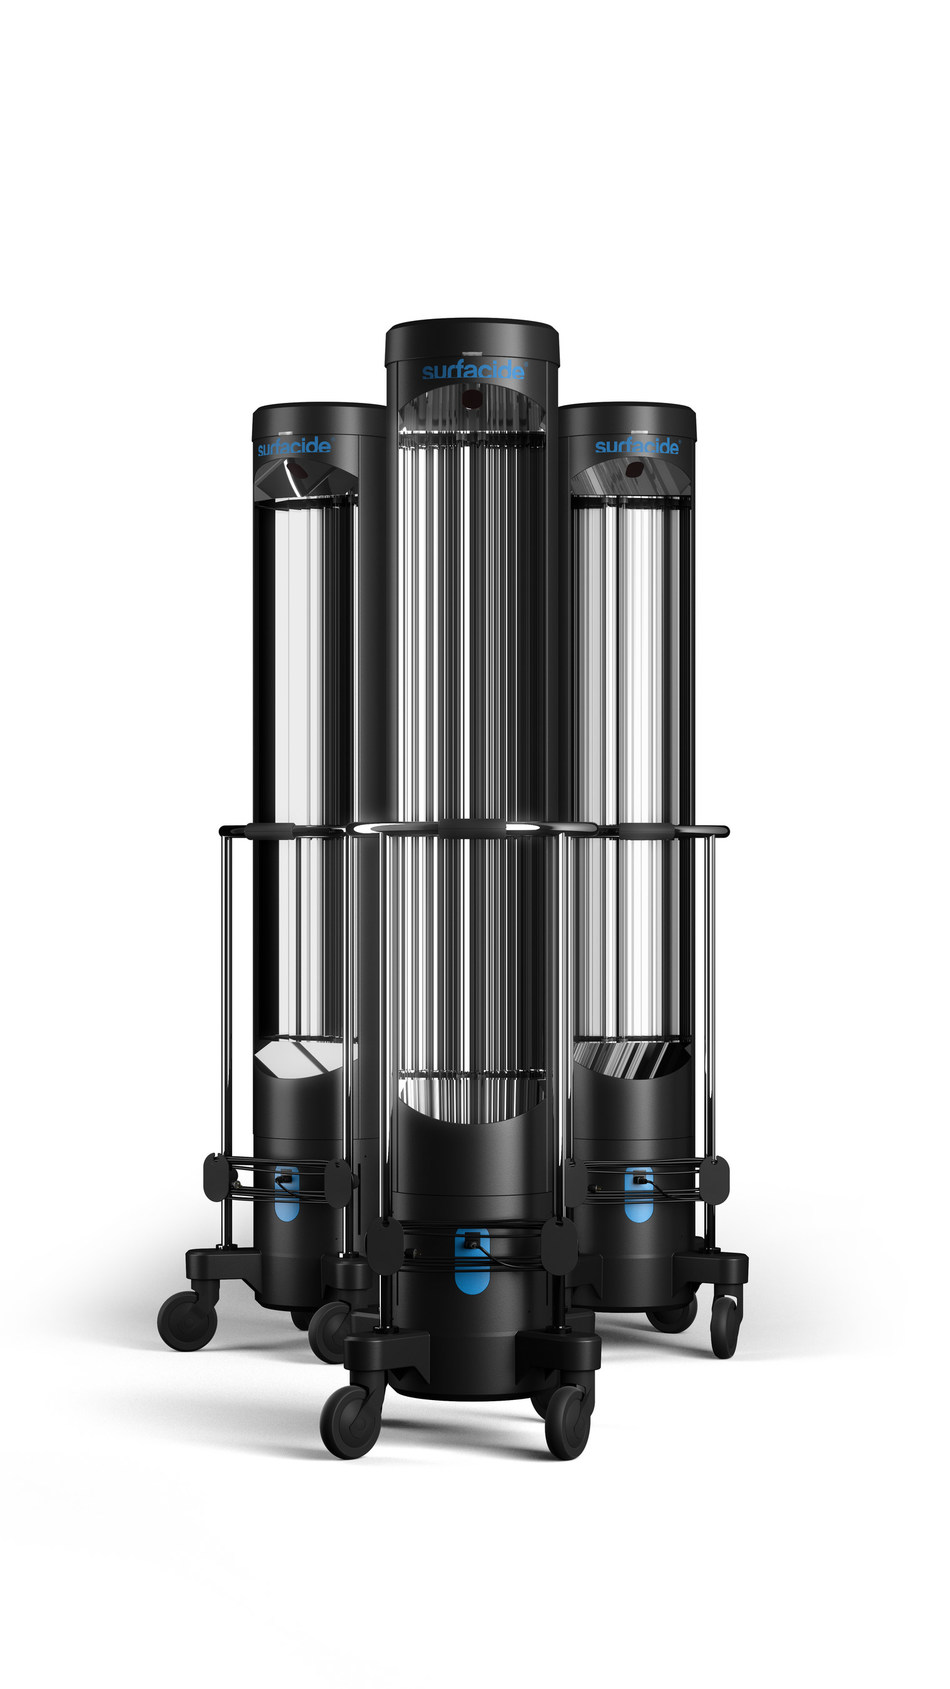 Surfacide Helios(R) UV-C Disinfection System